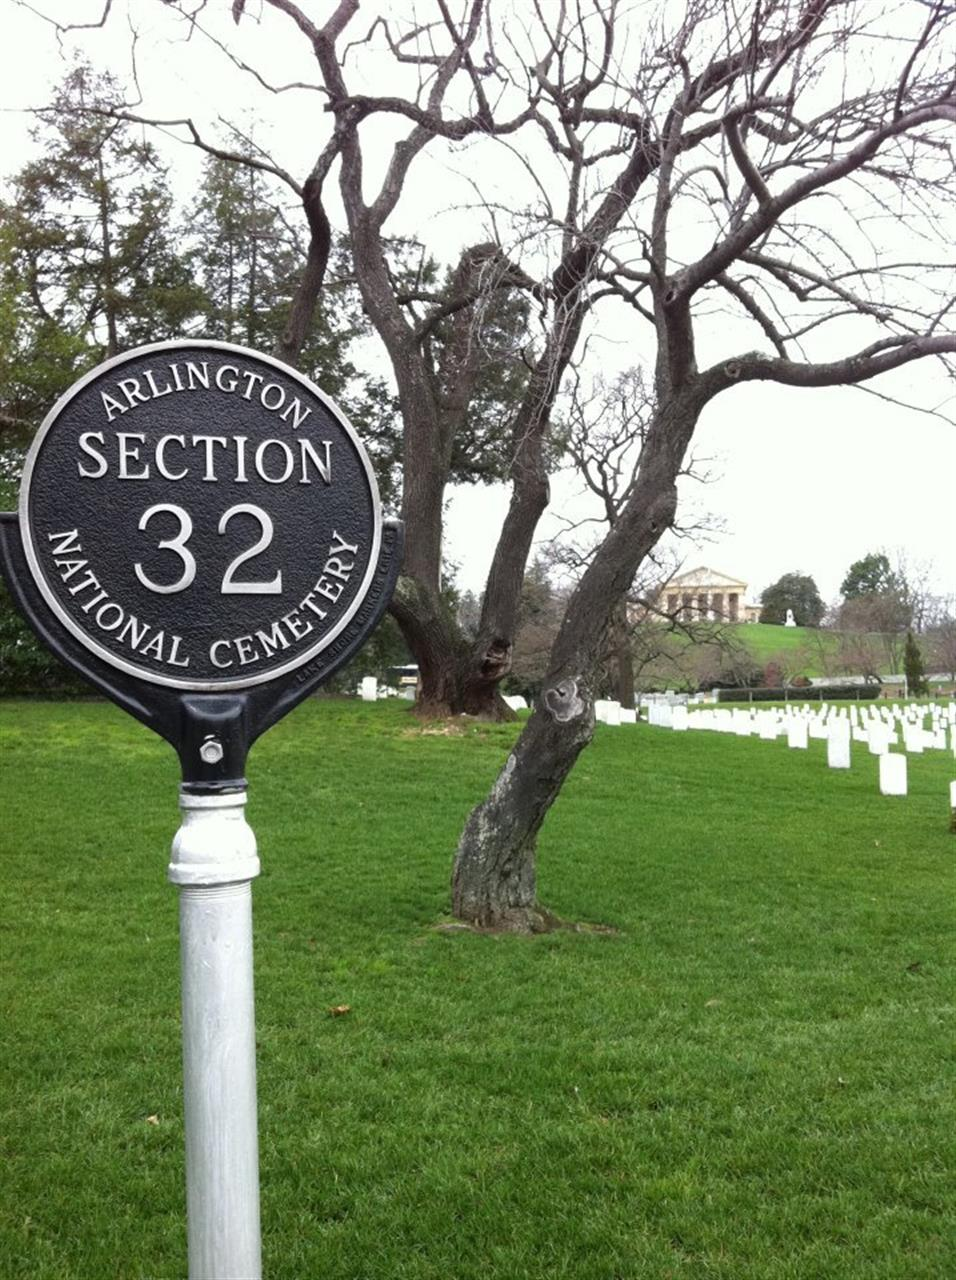 Arlington Cemetery, may they rest in peace.